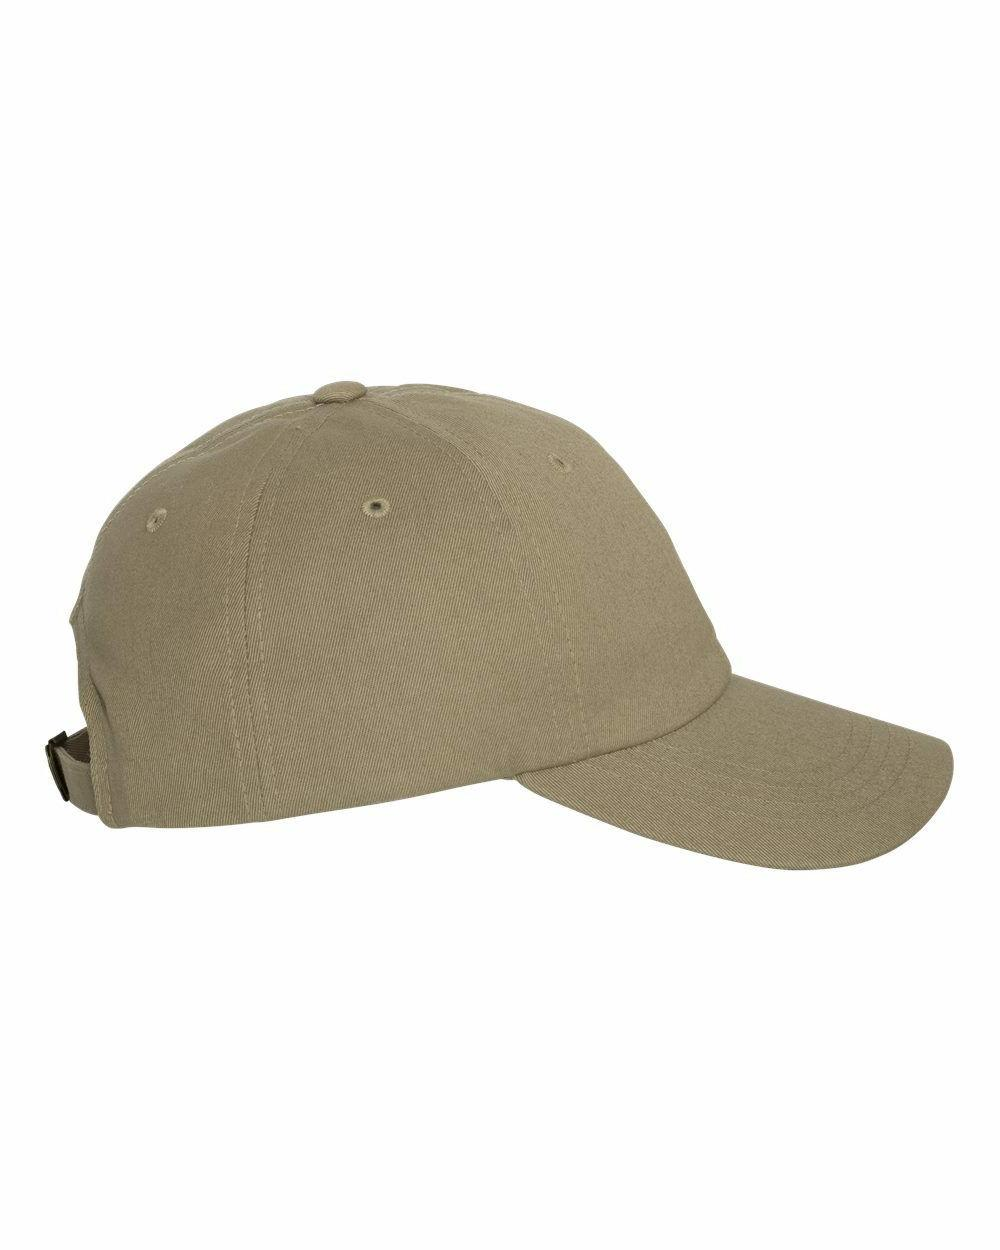 Kanye For President Embroidered Dad Baseball Cap-Khaki